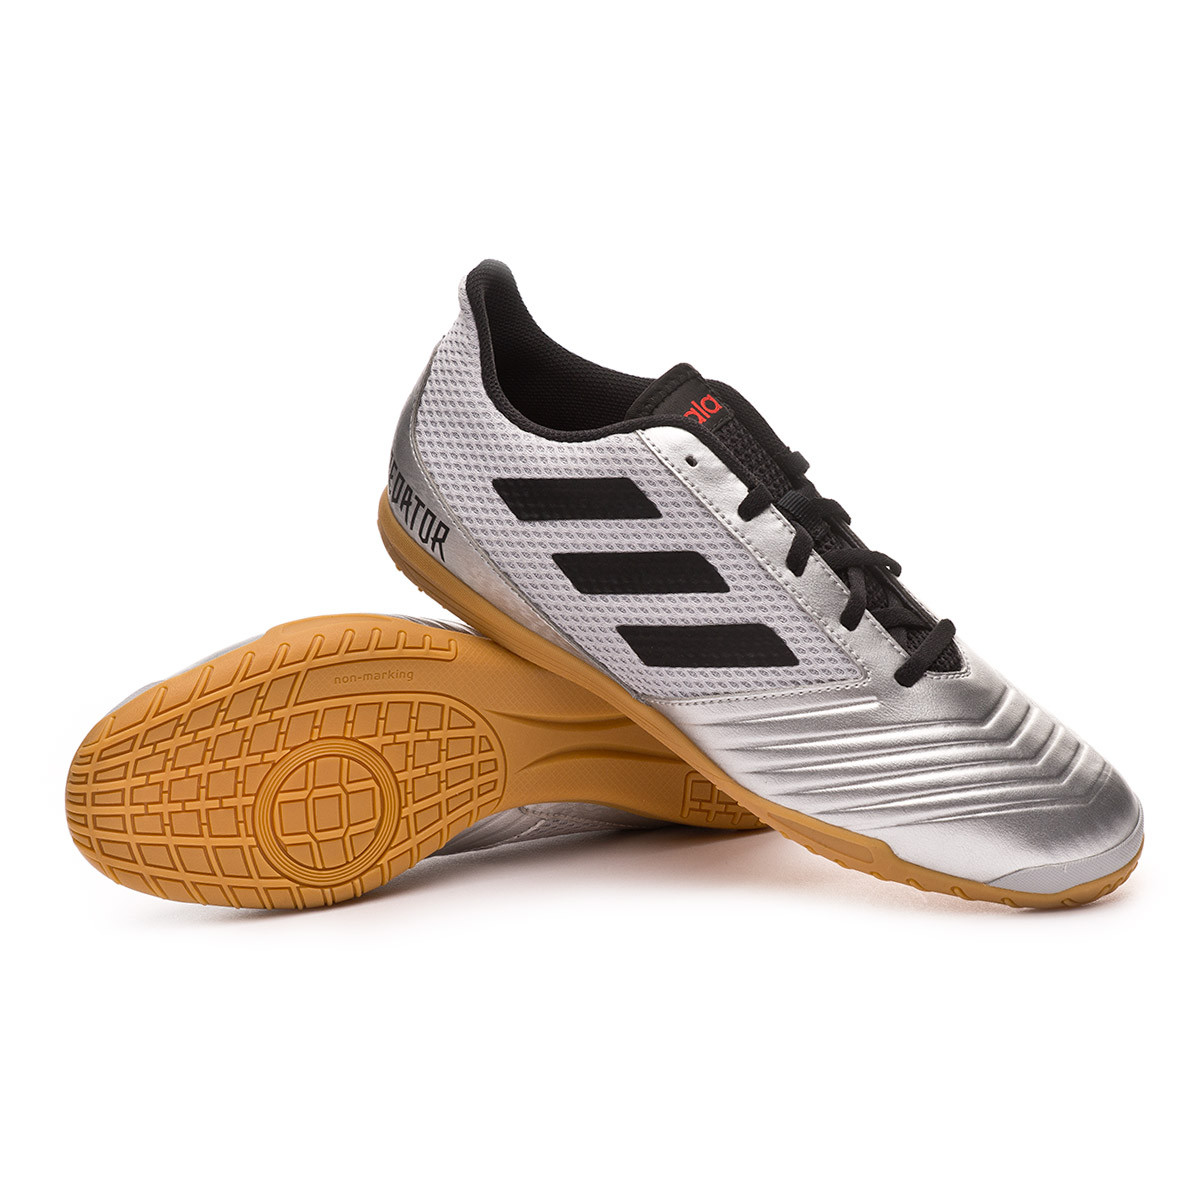 b8337615e6f Futsal Boot adidas Predator 19.4 IN Sala Silver metallic-Core black-Hi red  - Football store Fútbol Emotion